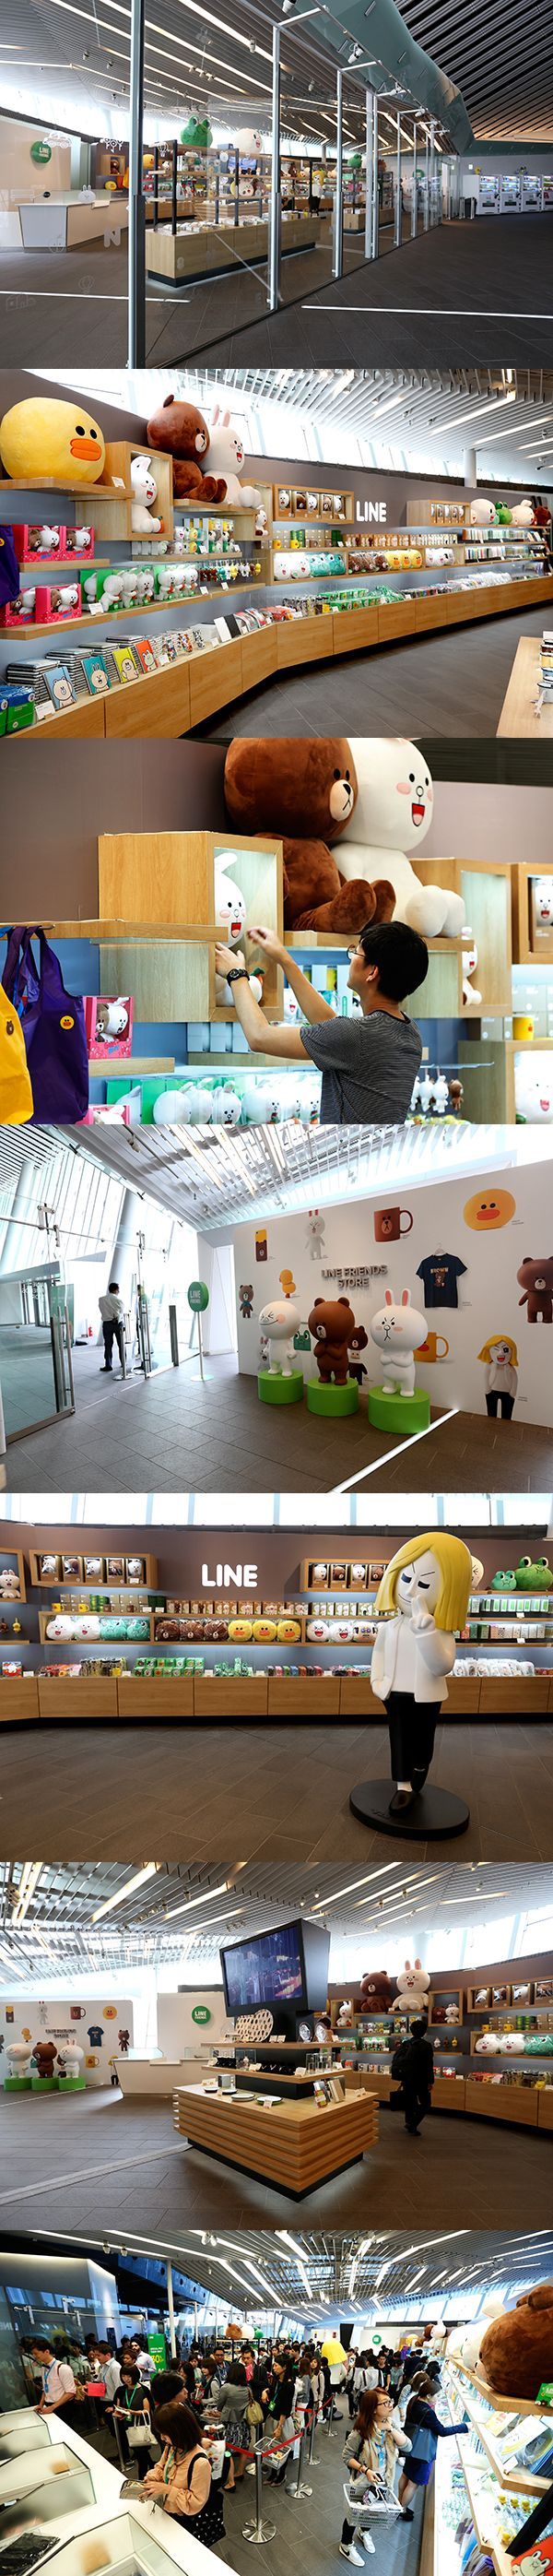 LINE CONFERENCE 2014 in TOKYO on Behance